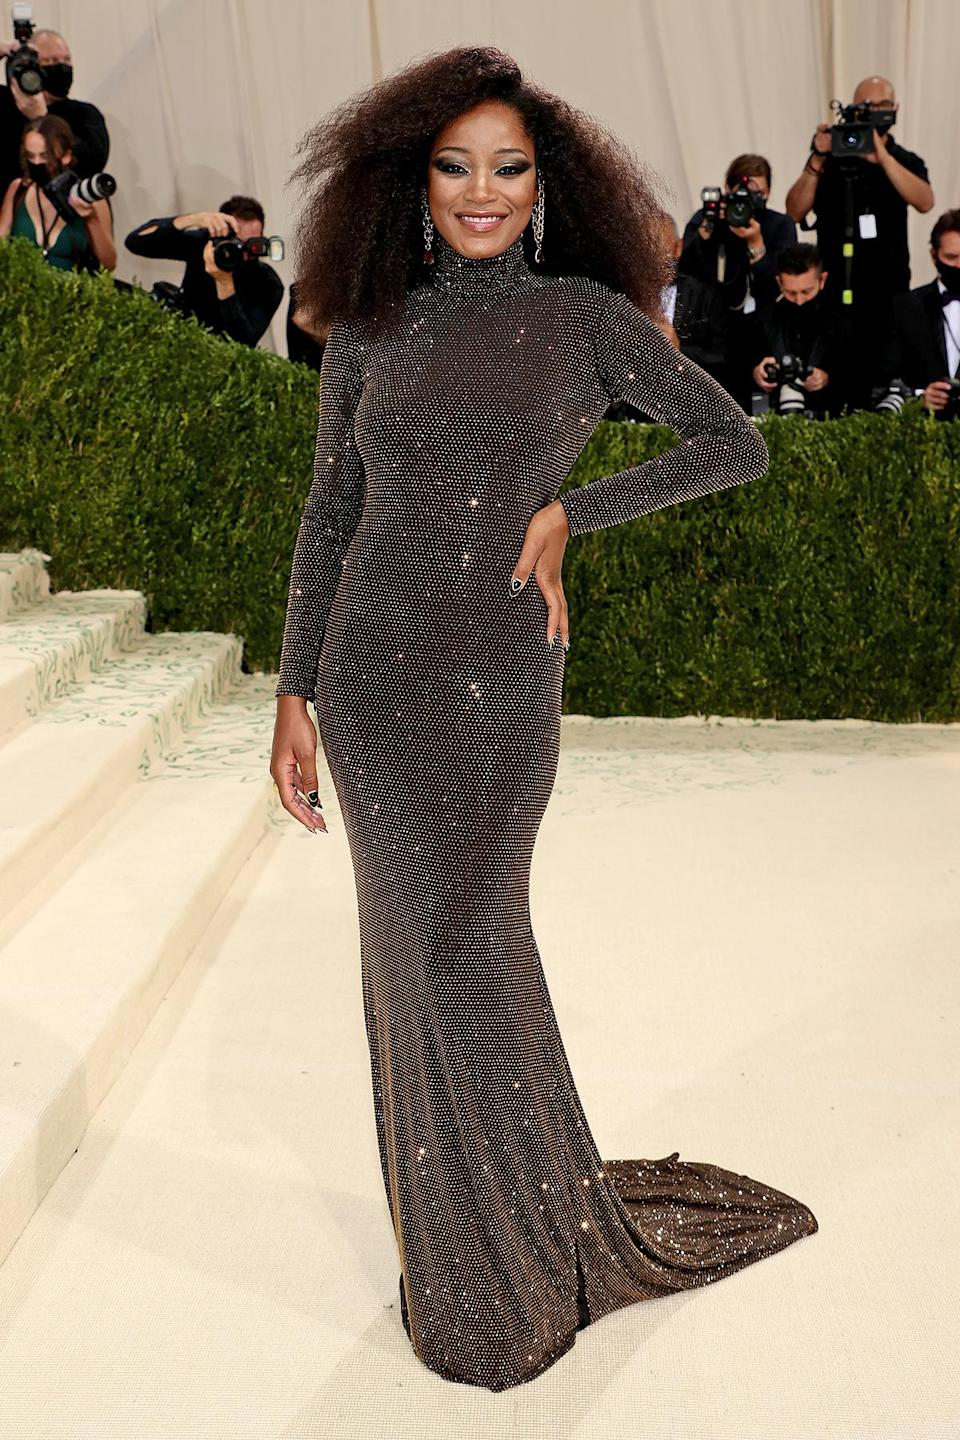 <p>in a high-neck, backless gold-and-black glittering gown.</p>